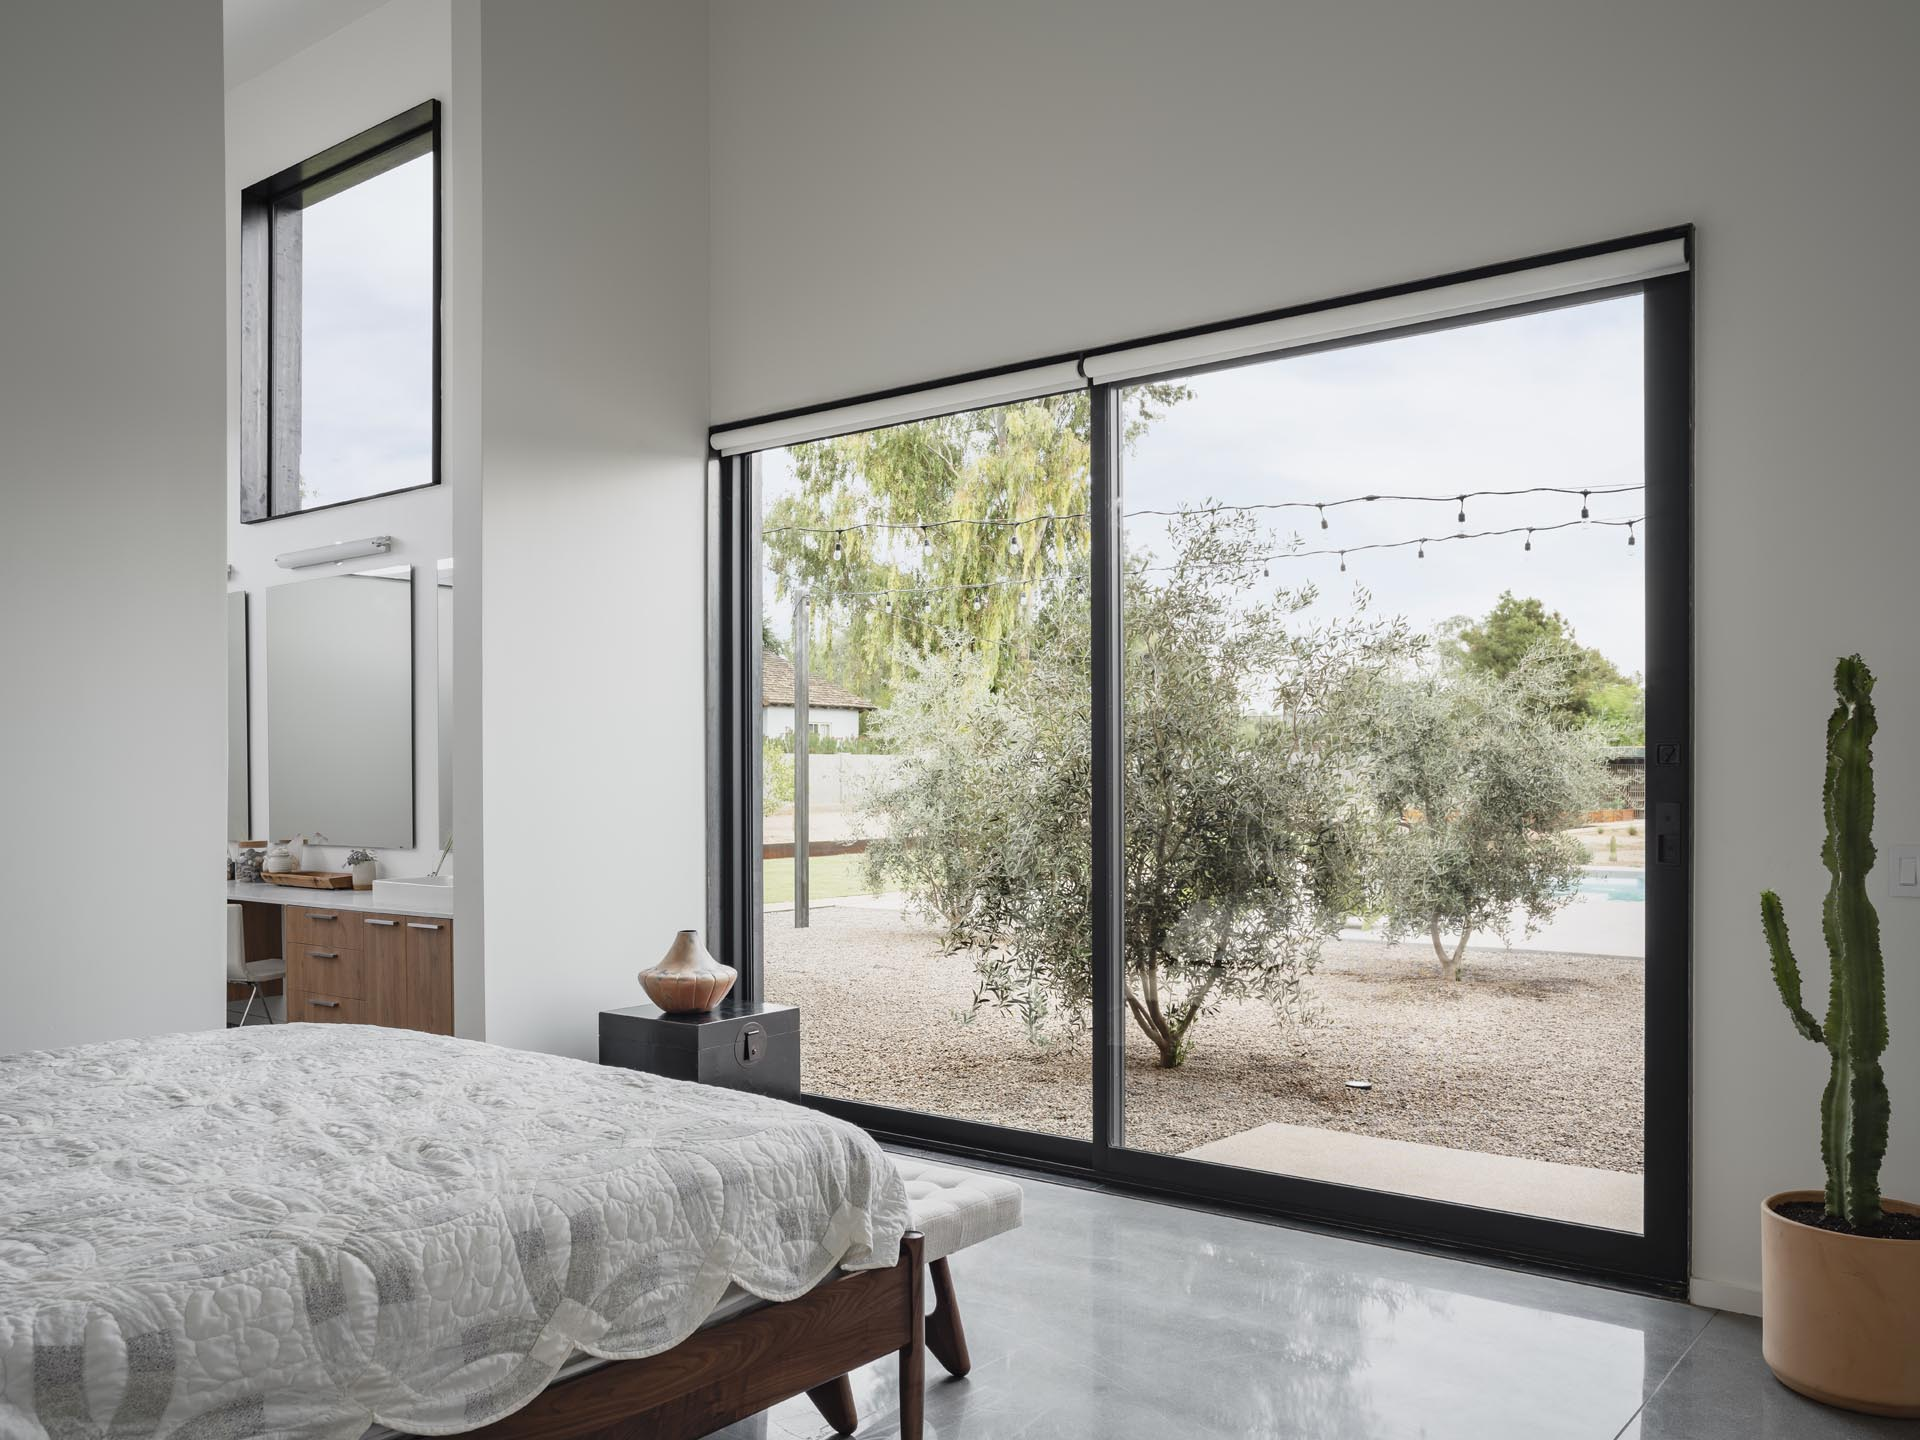 In this modern master bedroom, high ceilings create a lofty and open room, while a sliding door connects to the outdoors.